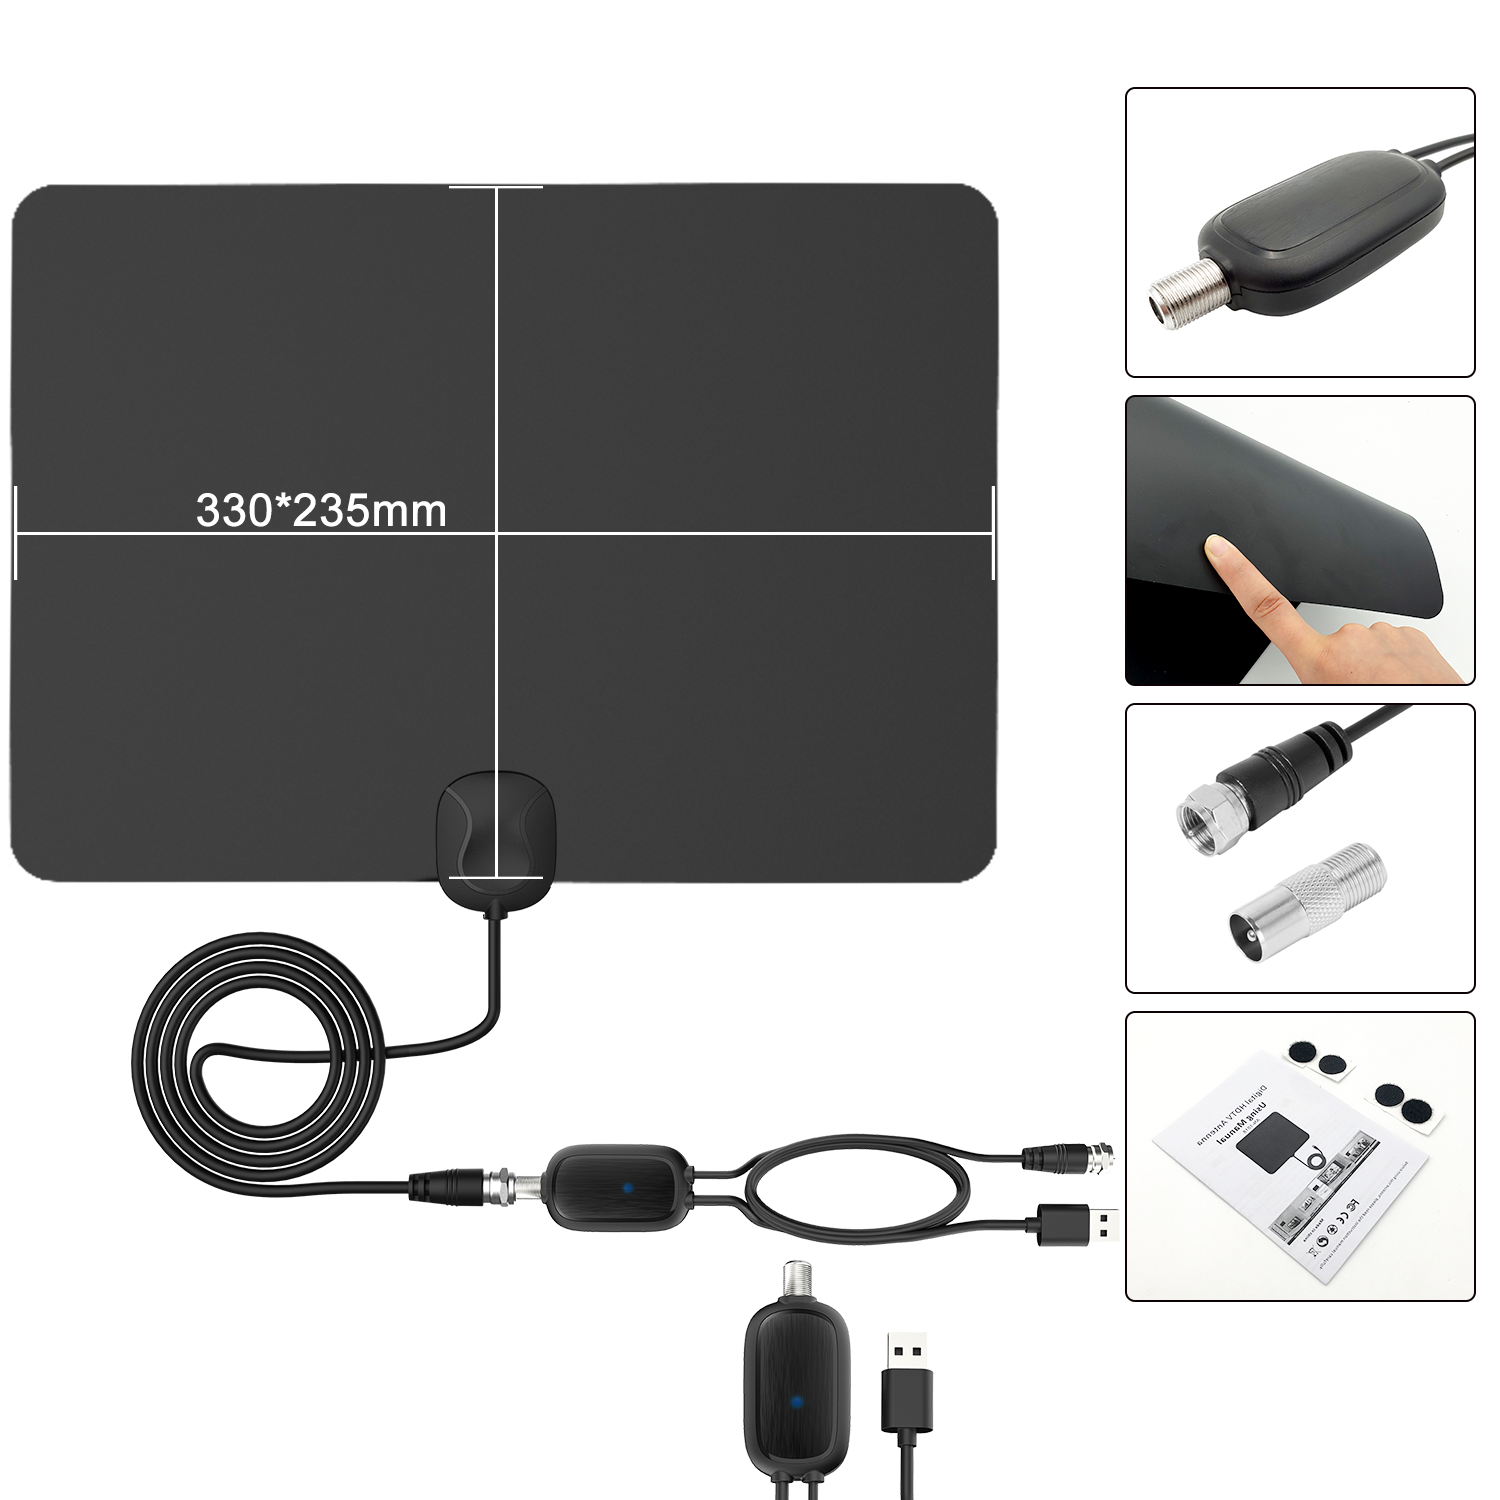 4K free VHF UHF ATSC ISDB-T digital HD best indoor tv antenna